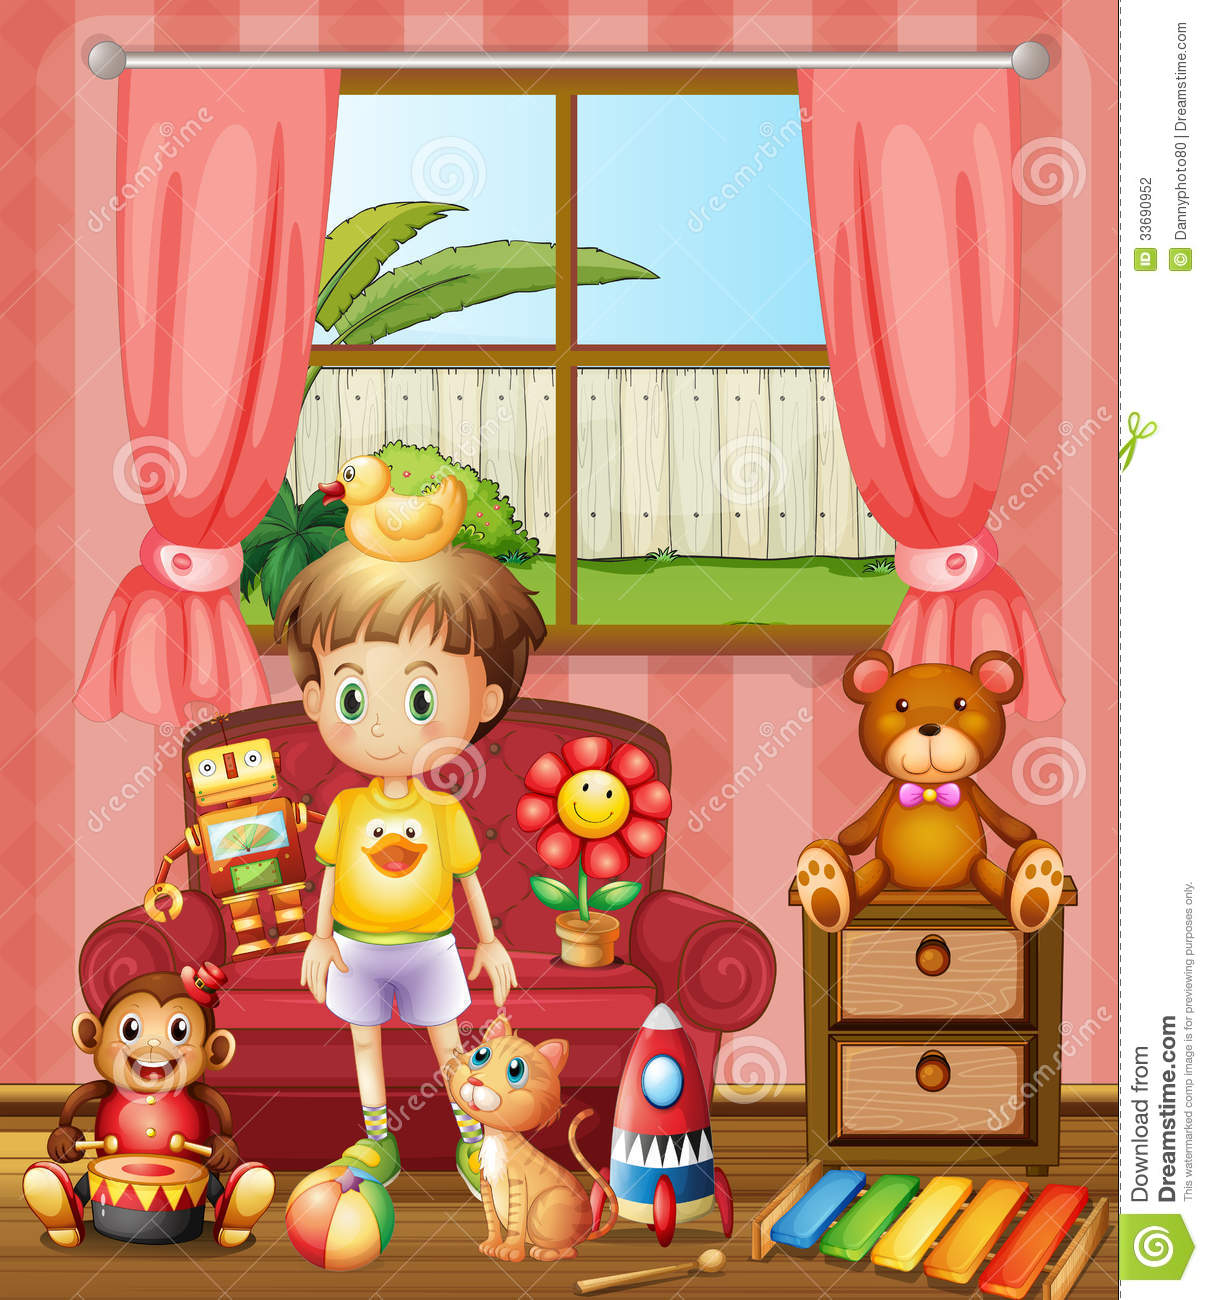 Cat Lover likewise Item2783 further Building A Dog House as well Stock Photography Kid Inside House His Toys Illustration Image33690952 furthermore Zwerghamsterkaefig Selber Bauen. on wooden cat house plans